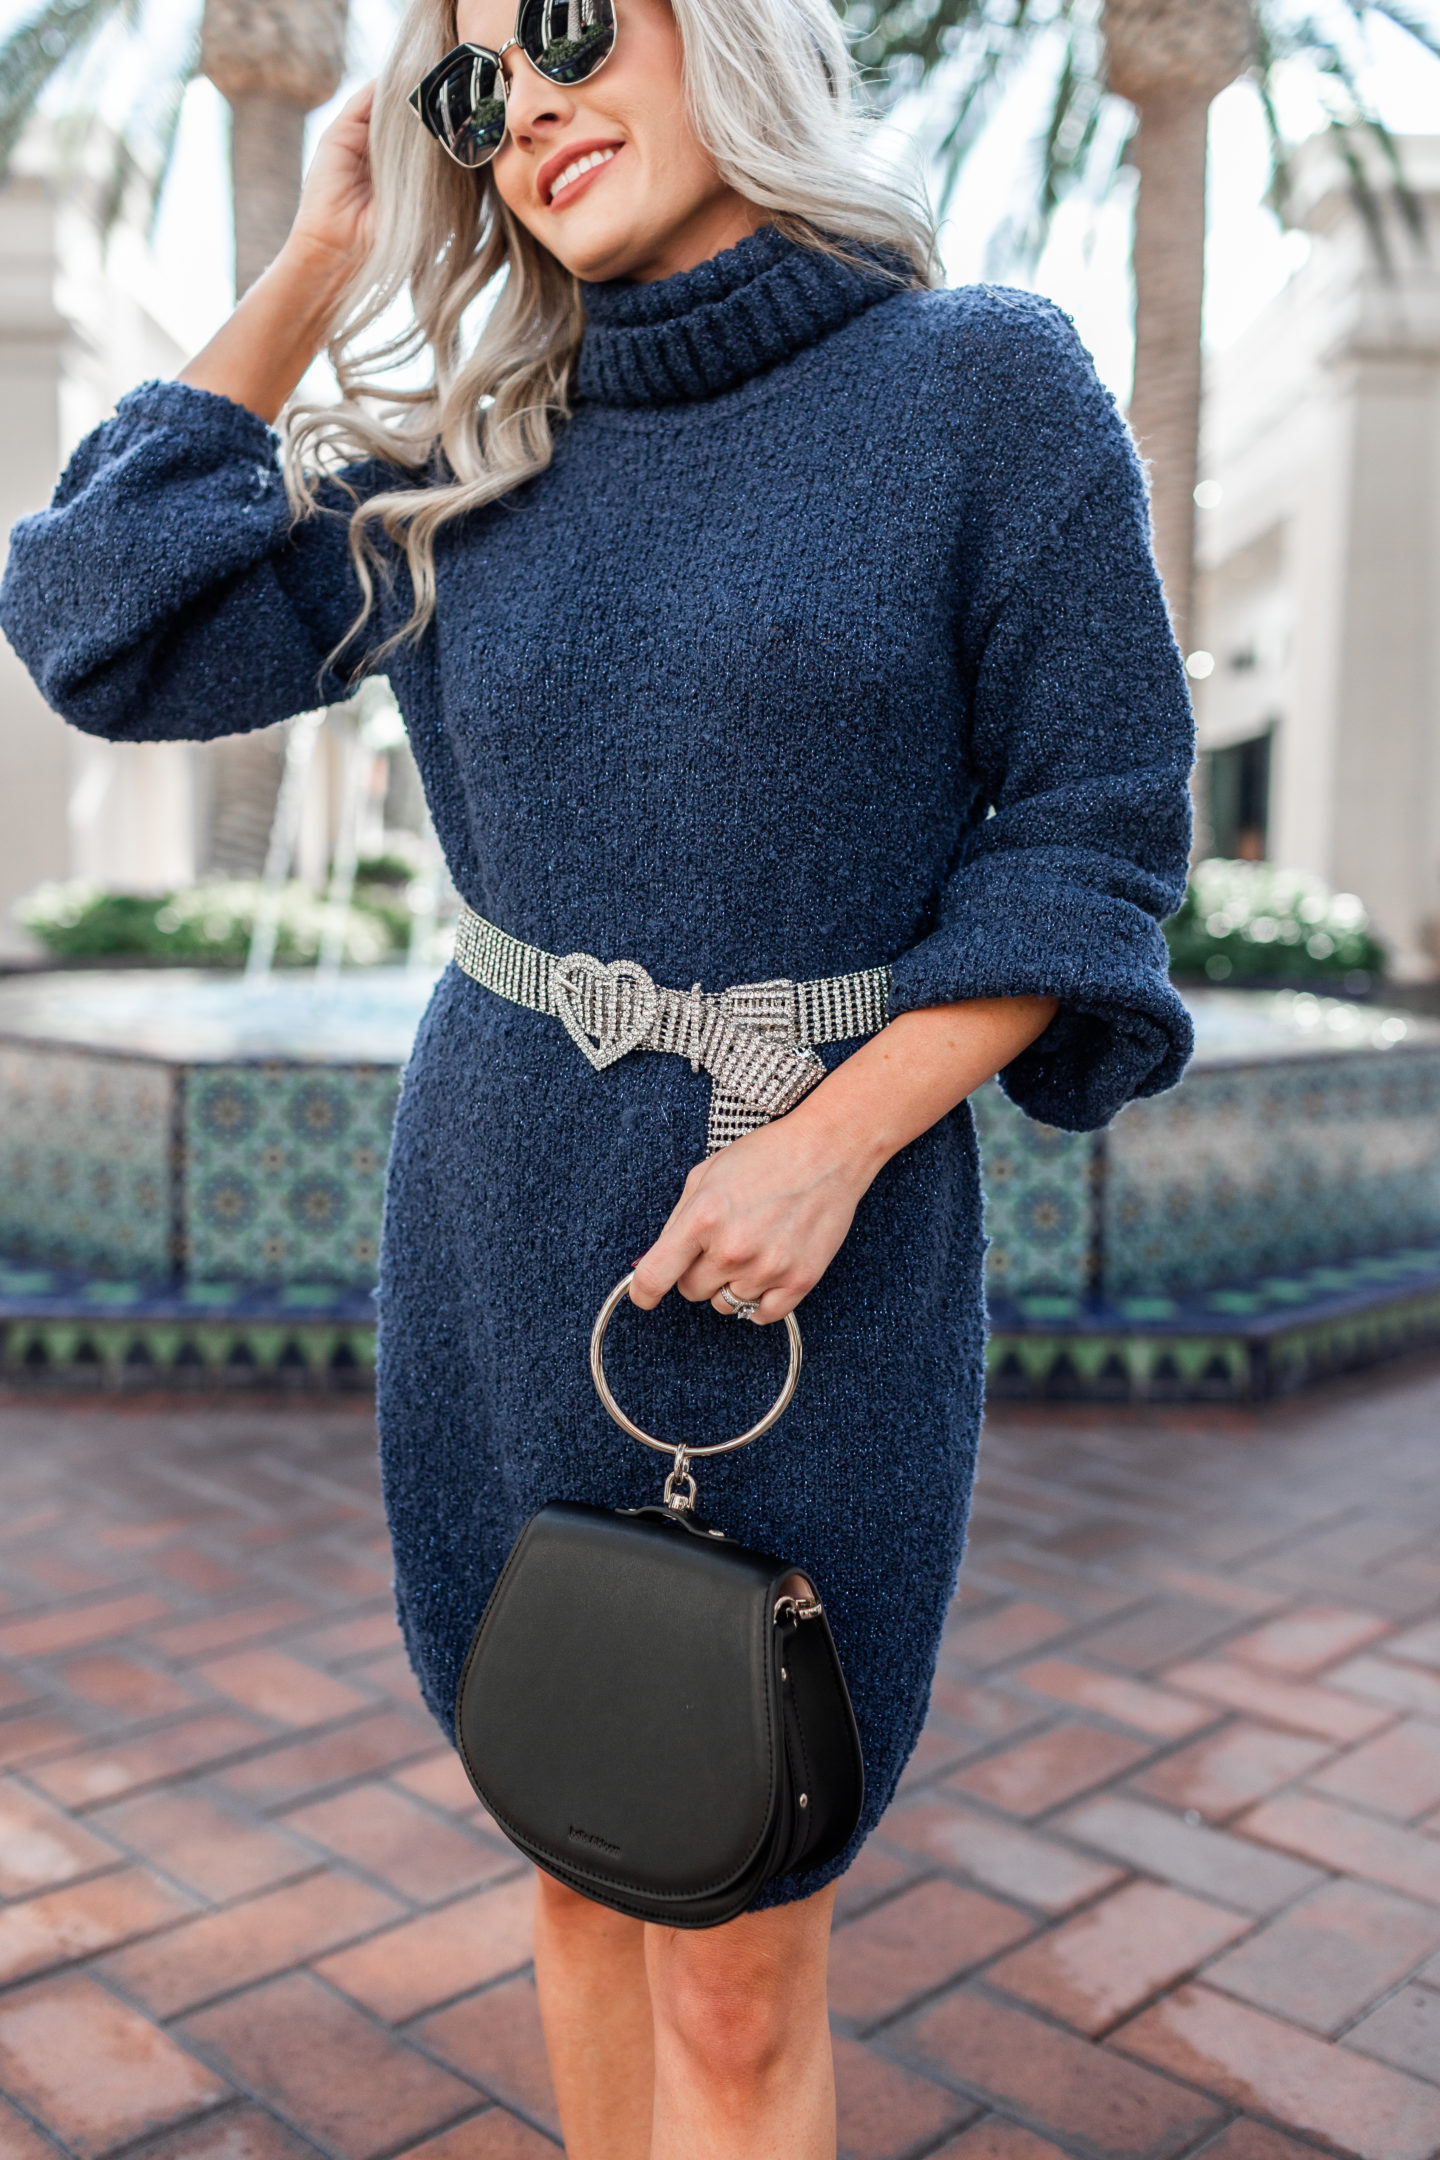 How to dress up a cozy sweater dress, tips featured by top US fashion blog, Dress Me Blonde: image of a woman wearing a Tularosa cozy sweater dress, GRLFRND belt, Jeffrey Campbell sock booties and a Whole bracelet bag.